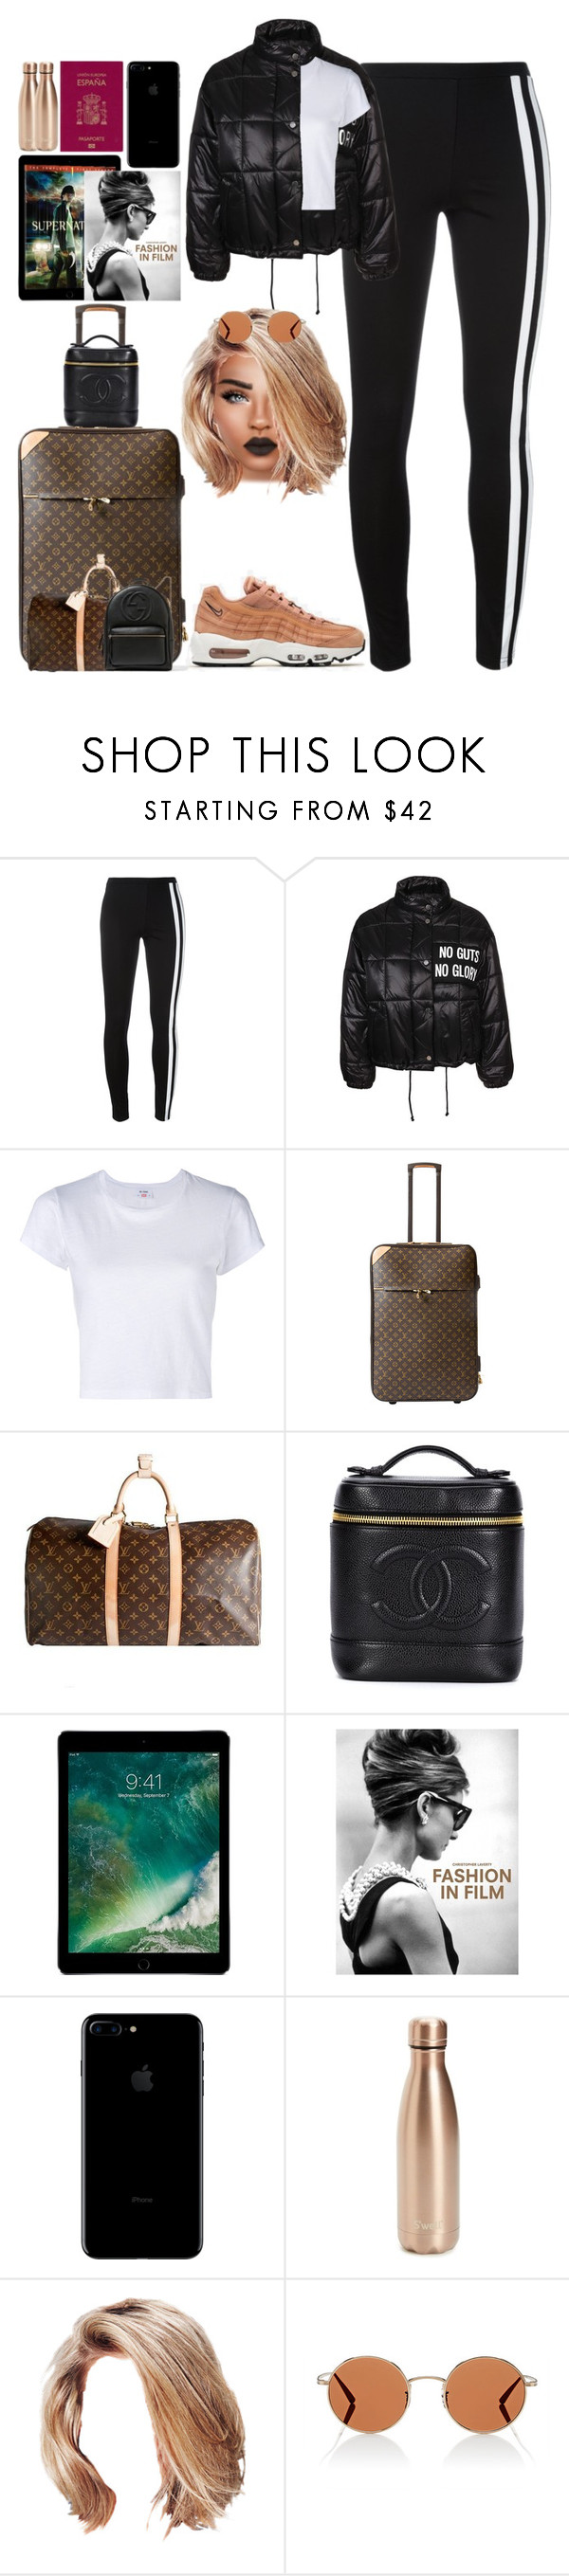 """""""*1871"""" by asoc10 ❤ liked on Polyvore featuring NIKE, Y-3, RE/DONE, Louis Vuitton, Chanel, Chronicle Books, S'well, Oliver Peoples, Gucci and 25"""